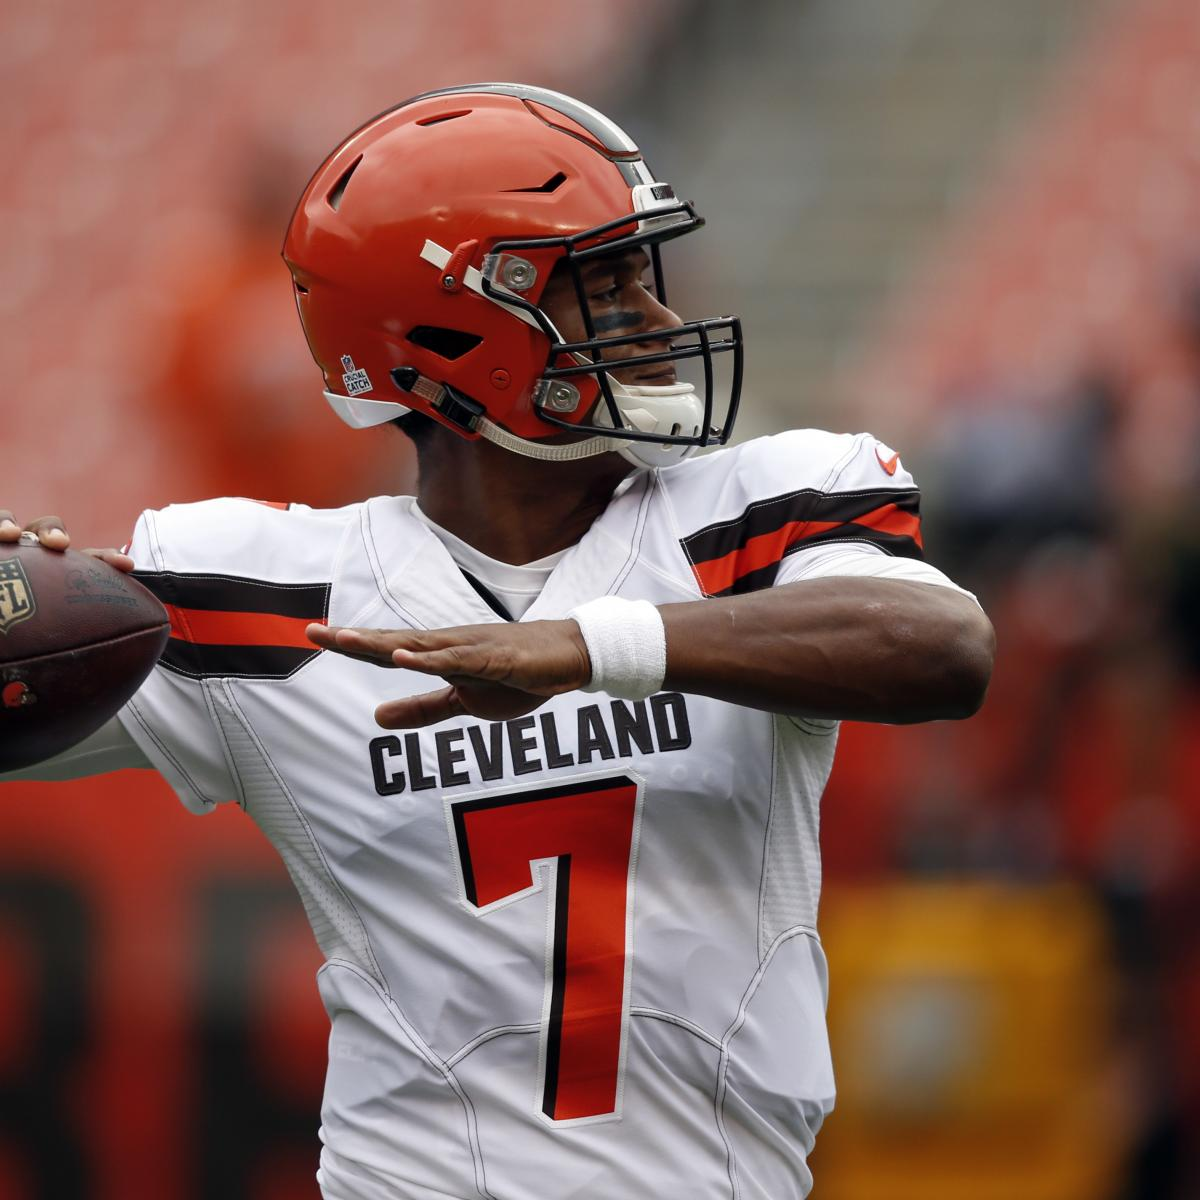 Nfl1000 Rookie Review From Week 9: NFL1000 Week 5 Notebook: Is It Time For Browns To Move On